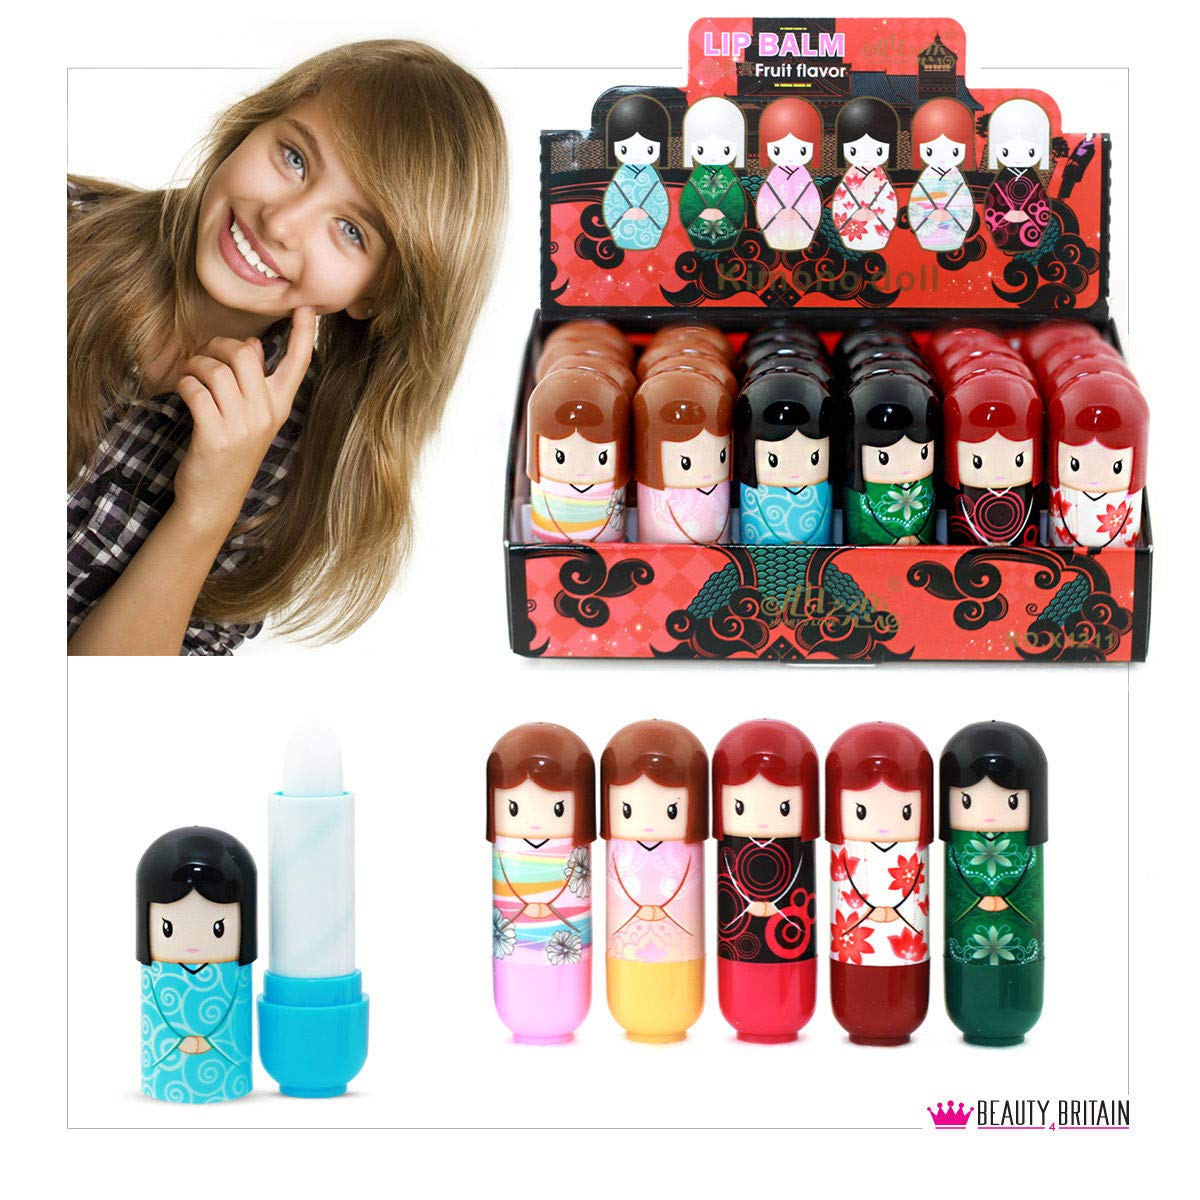 24 x Lip Balm Doll Shaped 6 Different Case Designs Display Box 2.6g Wholesale Price (24 Lip Balms (1 Box)) B4B